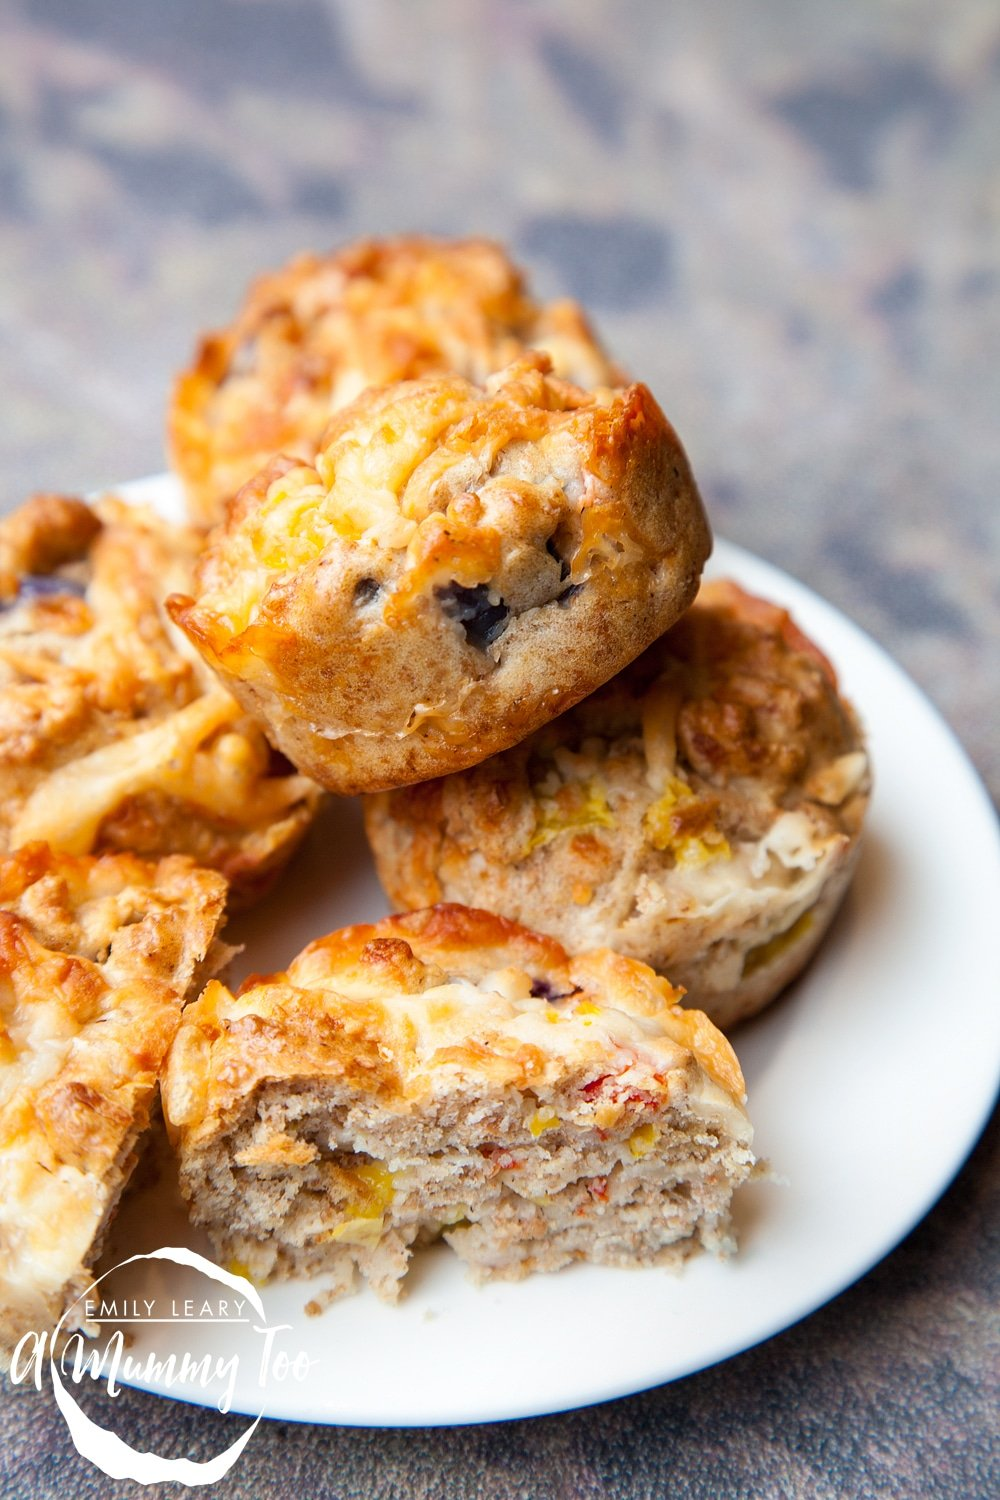 Tasty muffins made with wholewheat flour, onions and red peppers. The perfect vegetarian breakfast snack on the go.